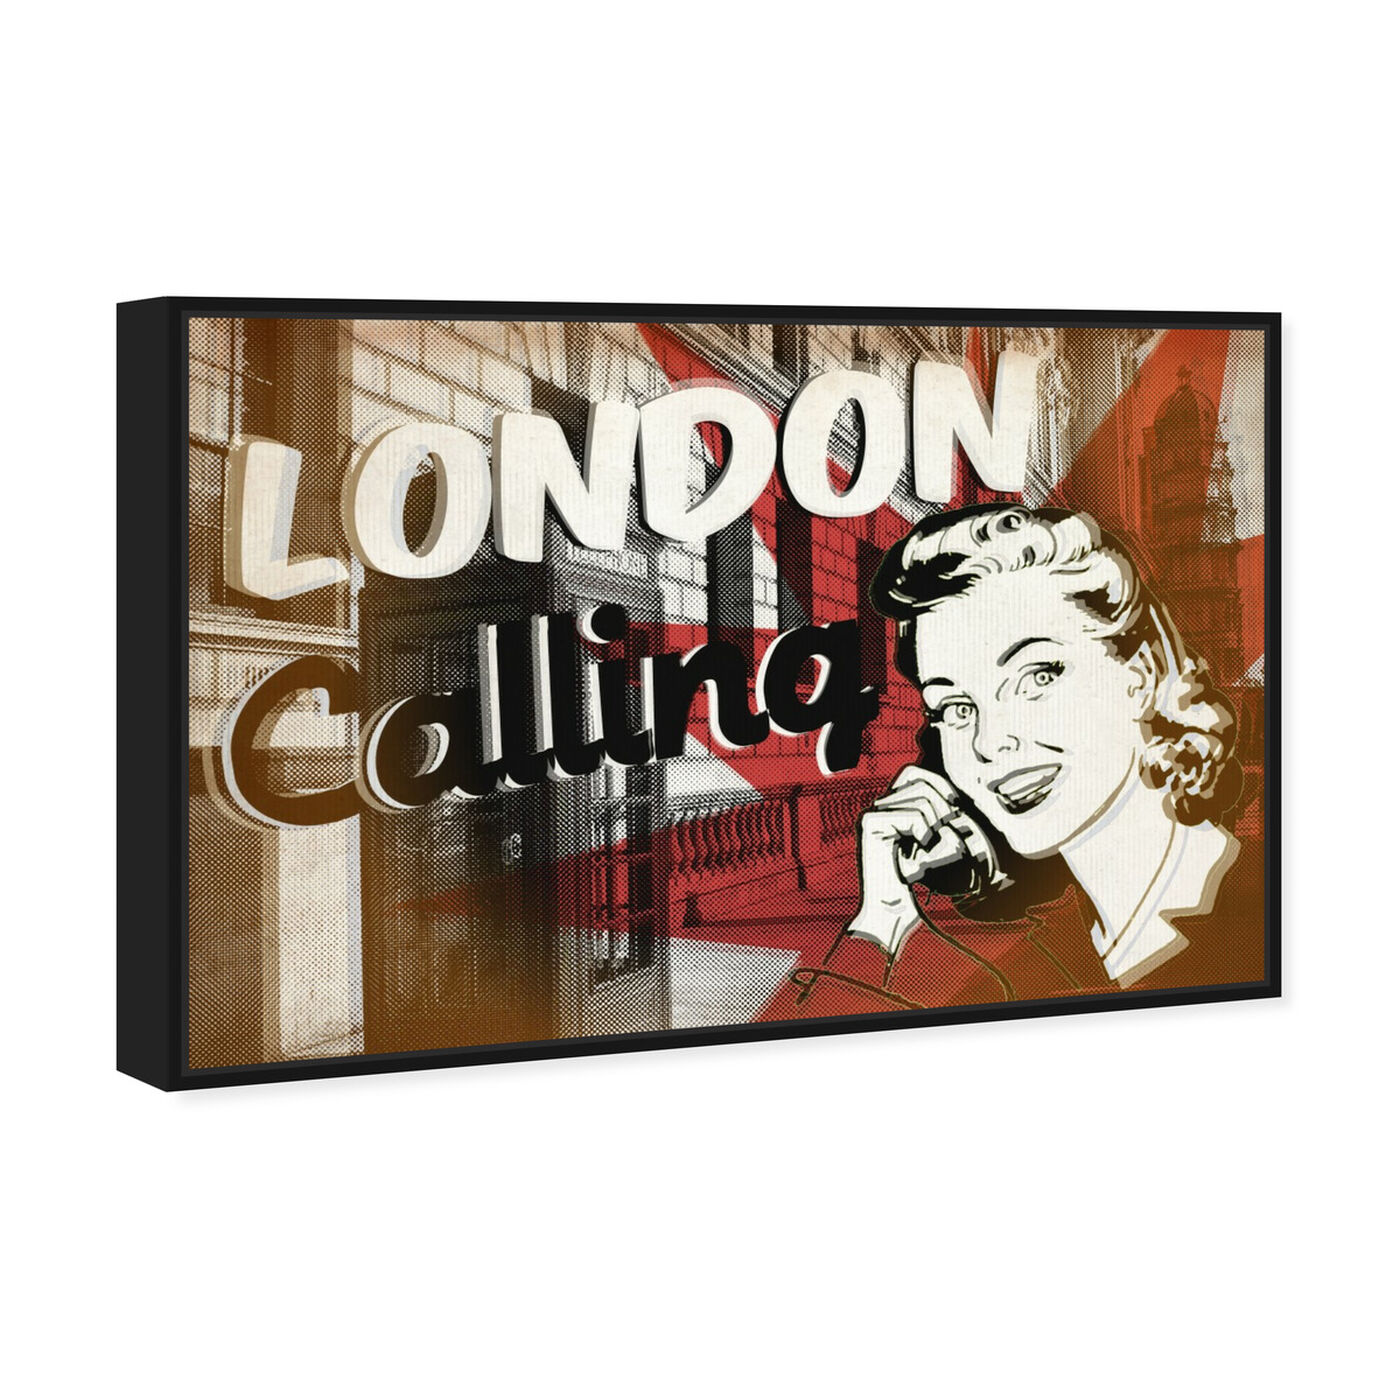 Angled view of London Calling featuring advertising and posters art.